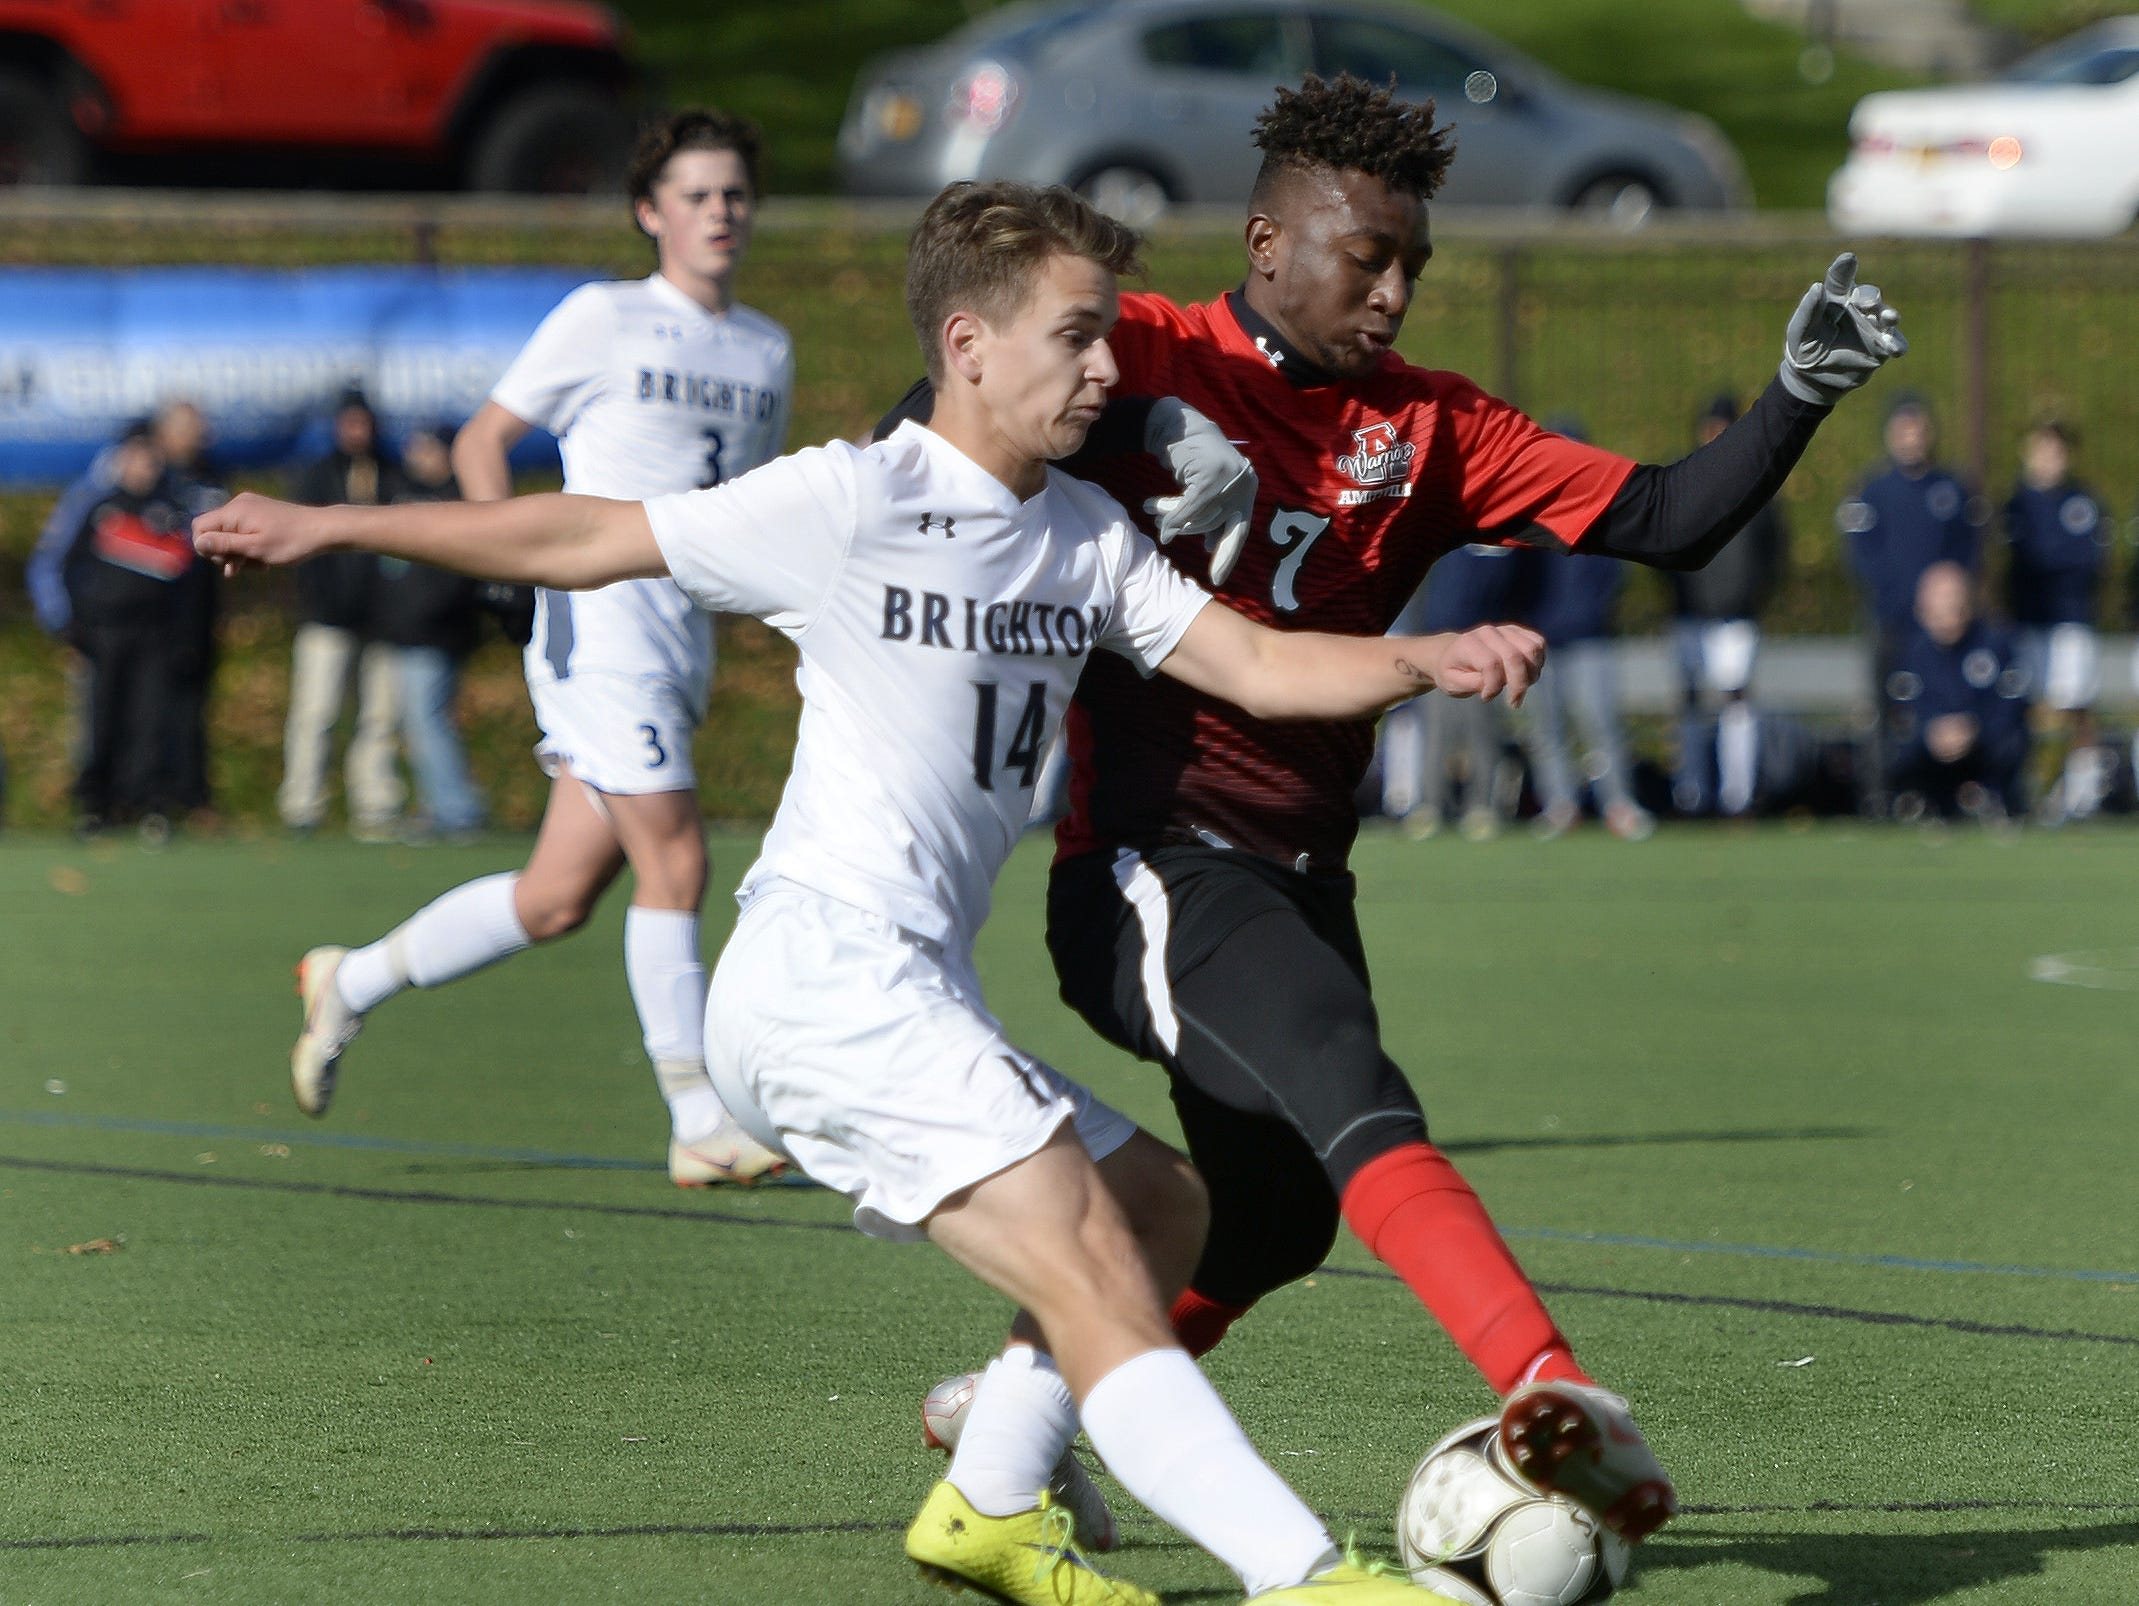 Brighton's Roman Storozynsky, left, clears the ball past Amityville's Kymani Hines during a Class A semifinal at the NYSPHSAA Boys Soccer Championships in Newburgh, N.Y., Saturday, Nov. 10, 2018.